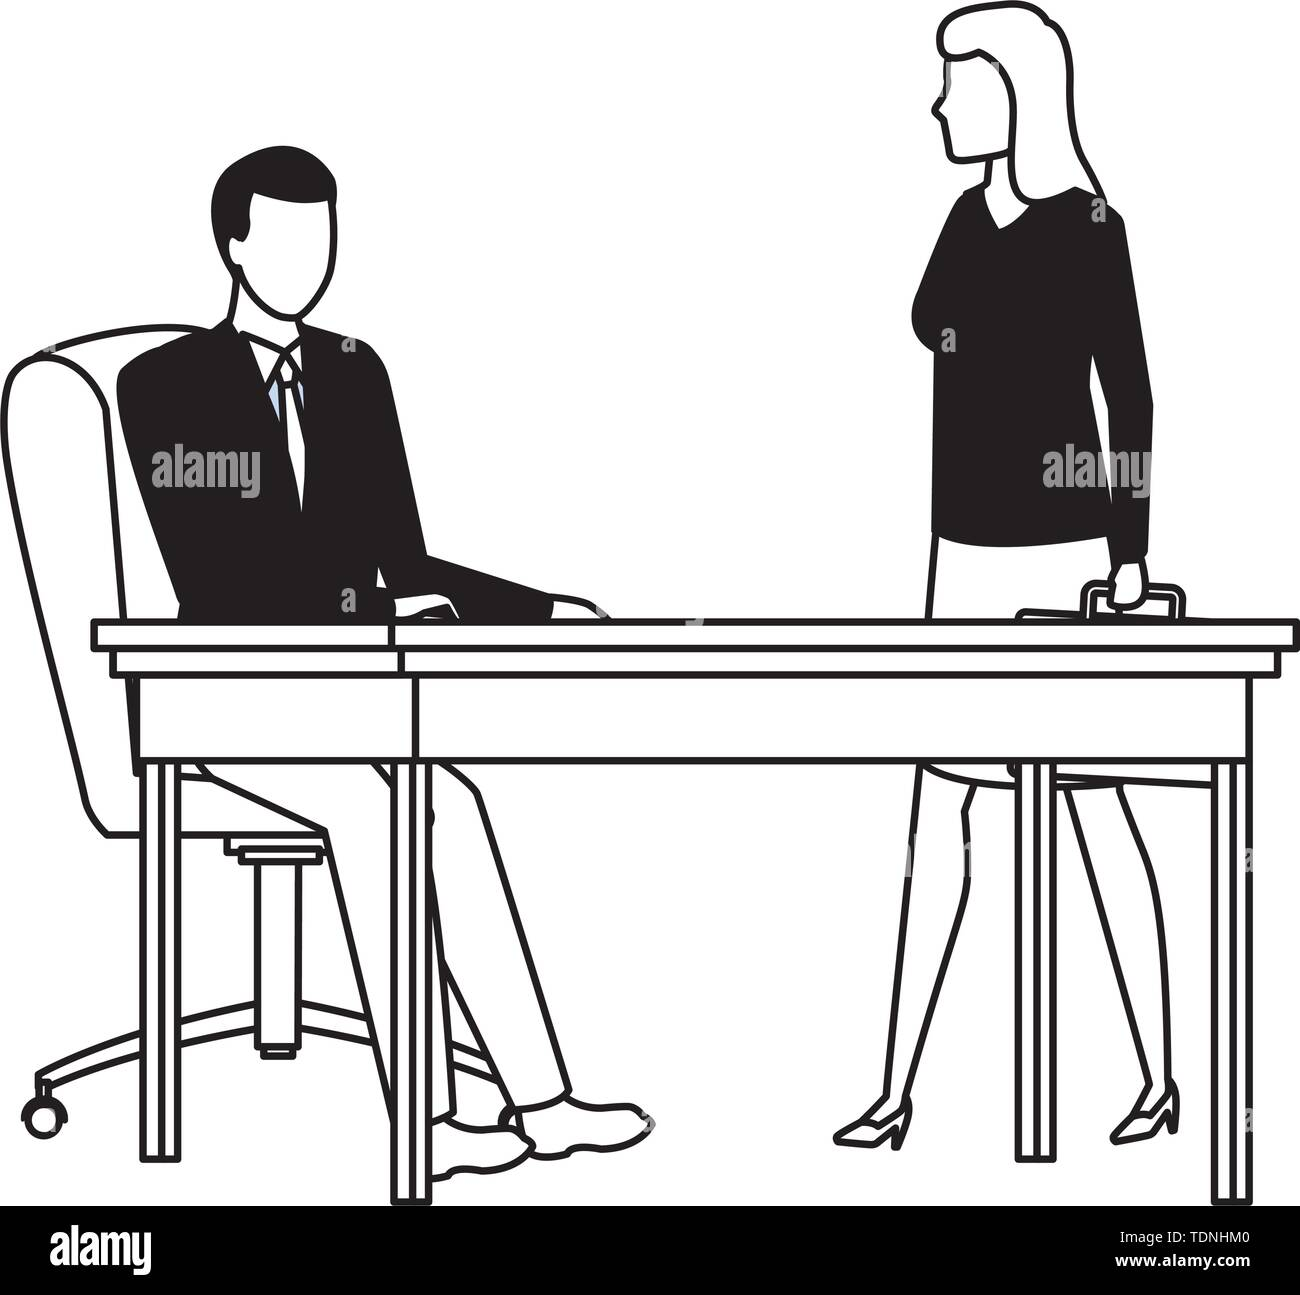 business business people businessman sitting on a desk and businesswoman carrying a briefcase avatar cartoon character in black and white - Stock Image